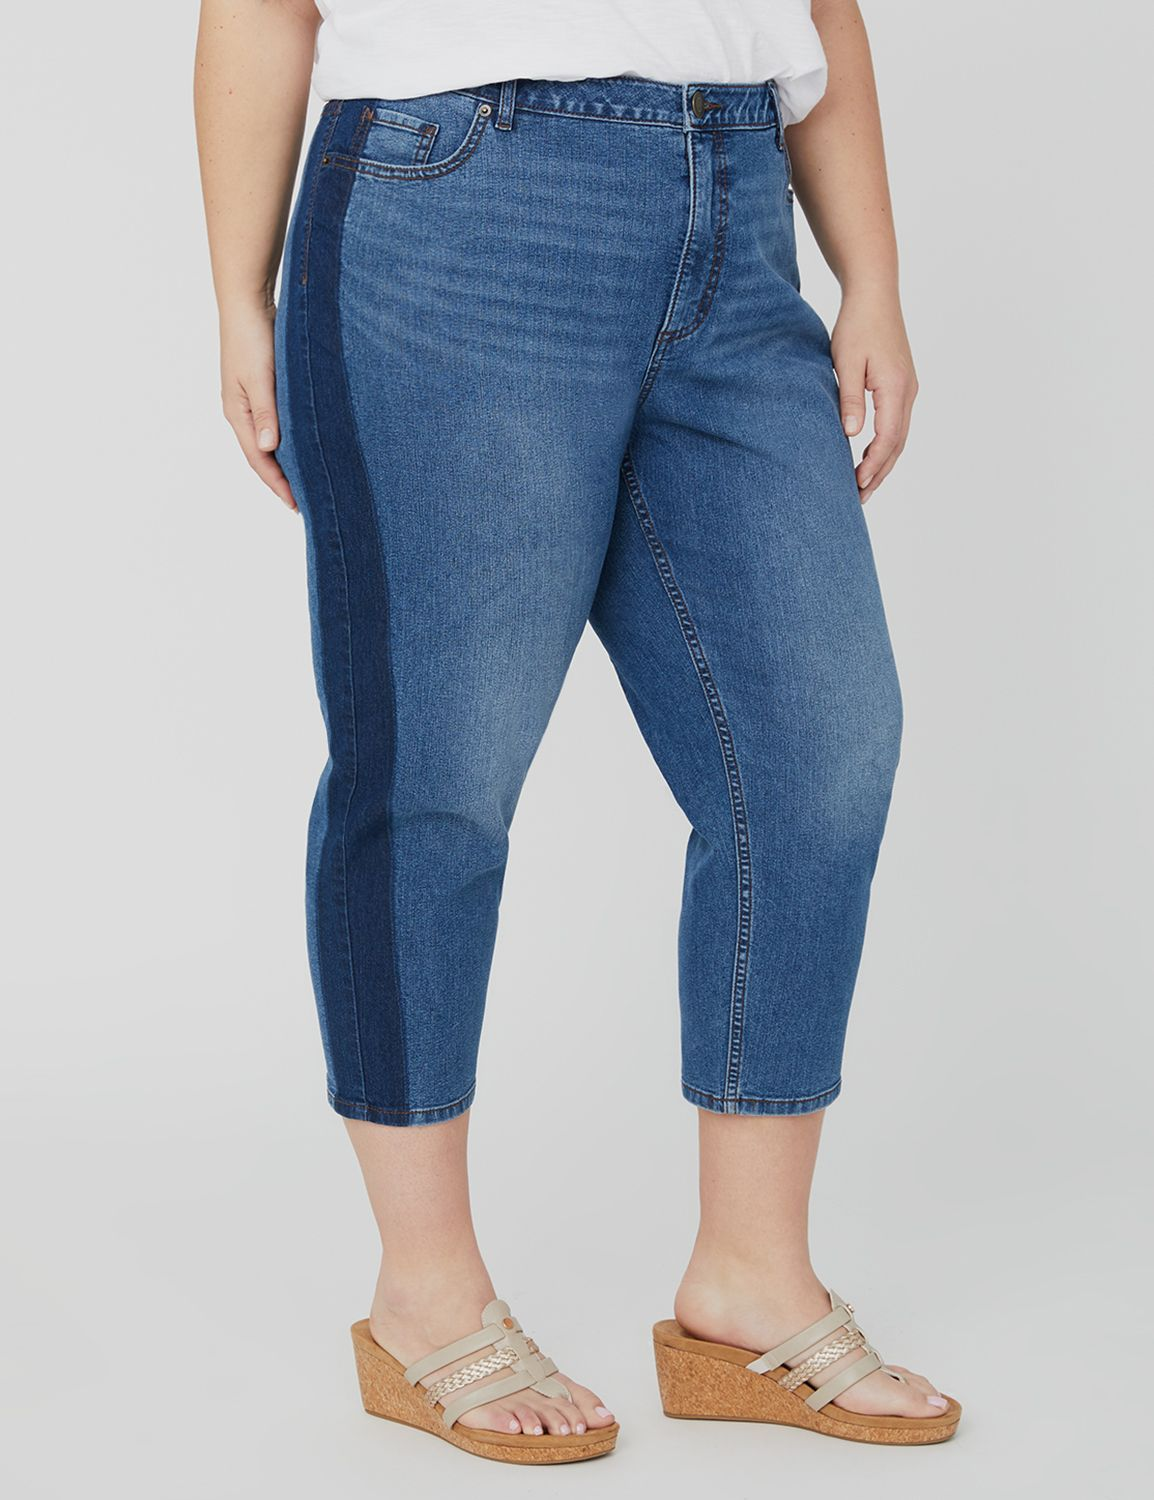 Jean Capri with Dark-Wash Stripe 1088046 2-TONE DENIM WASH ON SIDE S MP-300099565